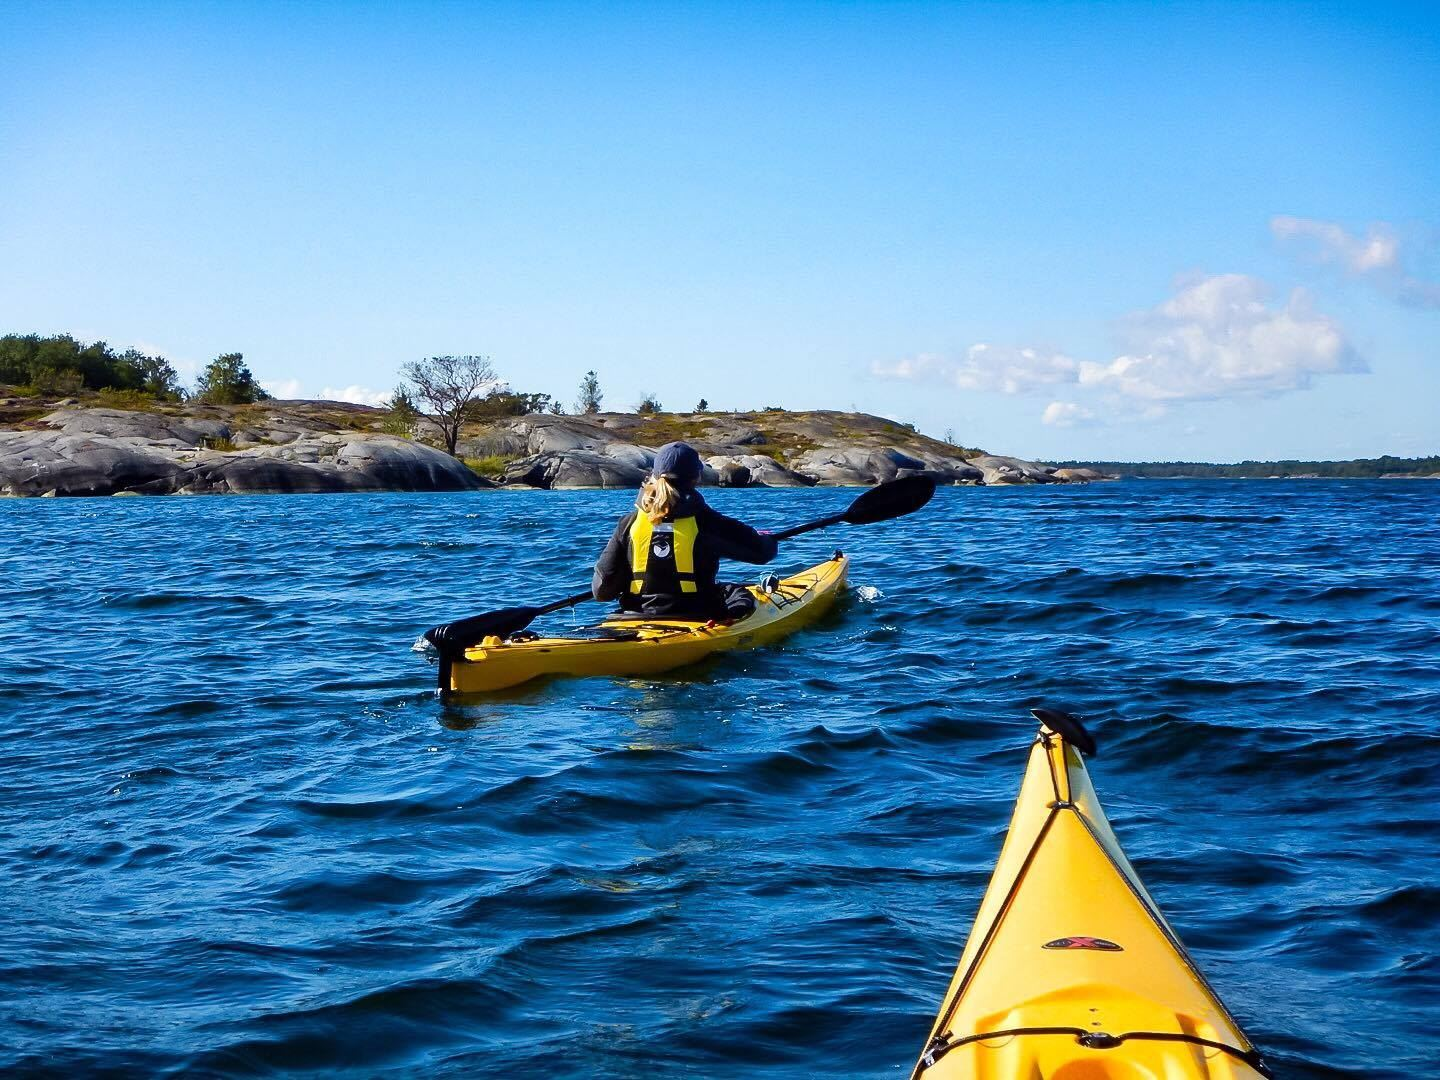 Get to know the bascis that enables you to enjoy future kayakingtrips